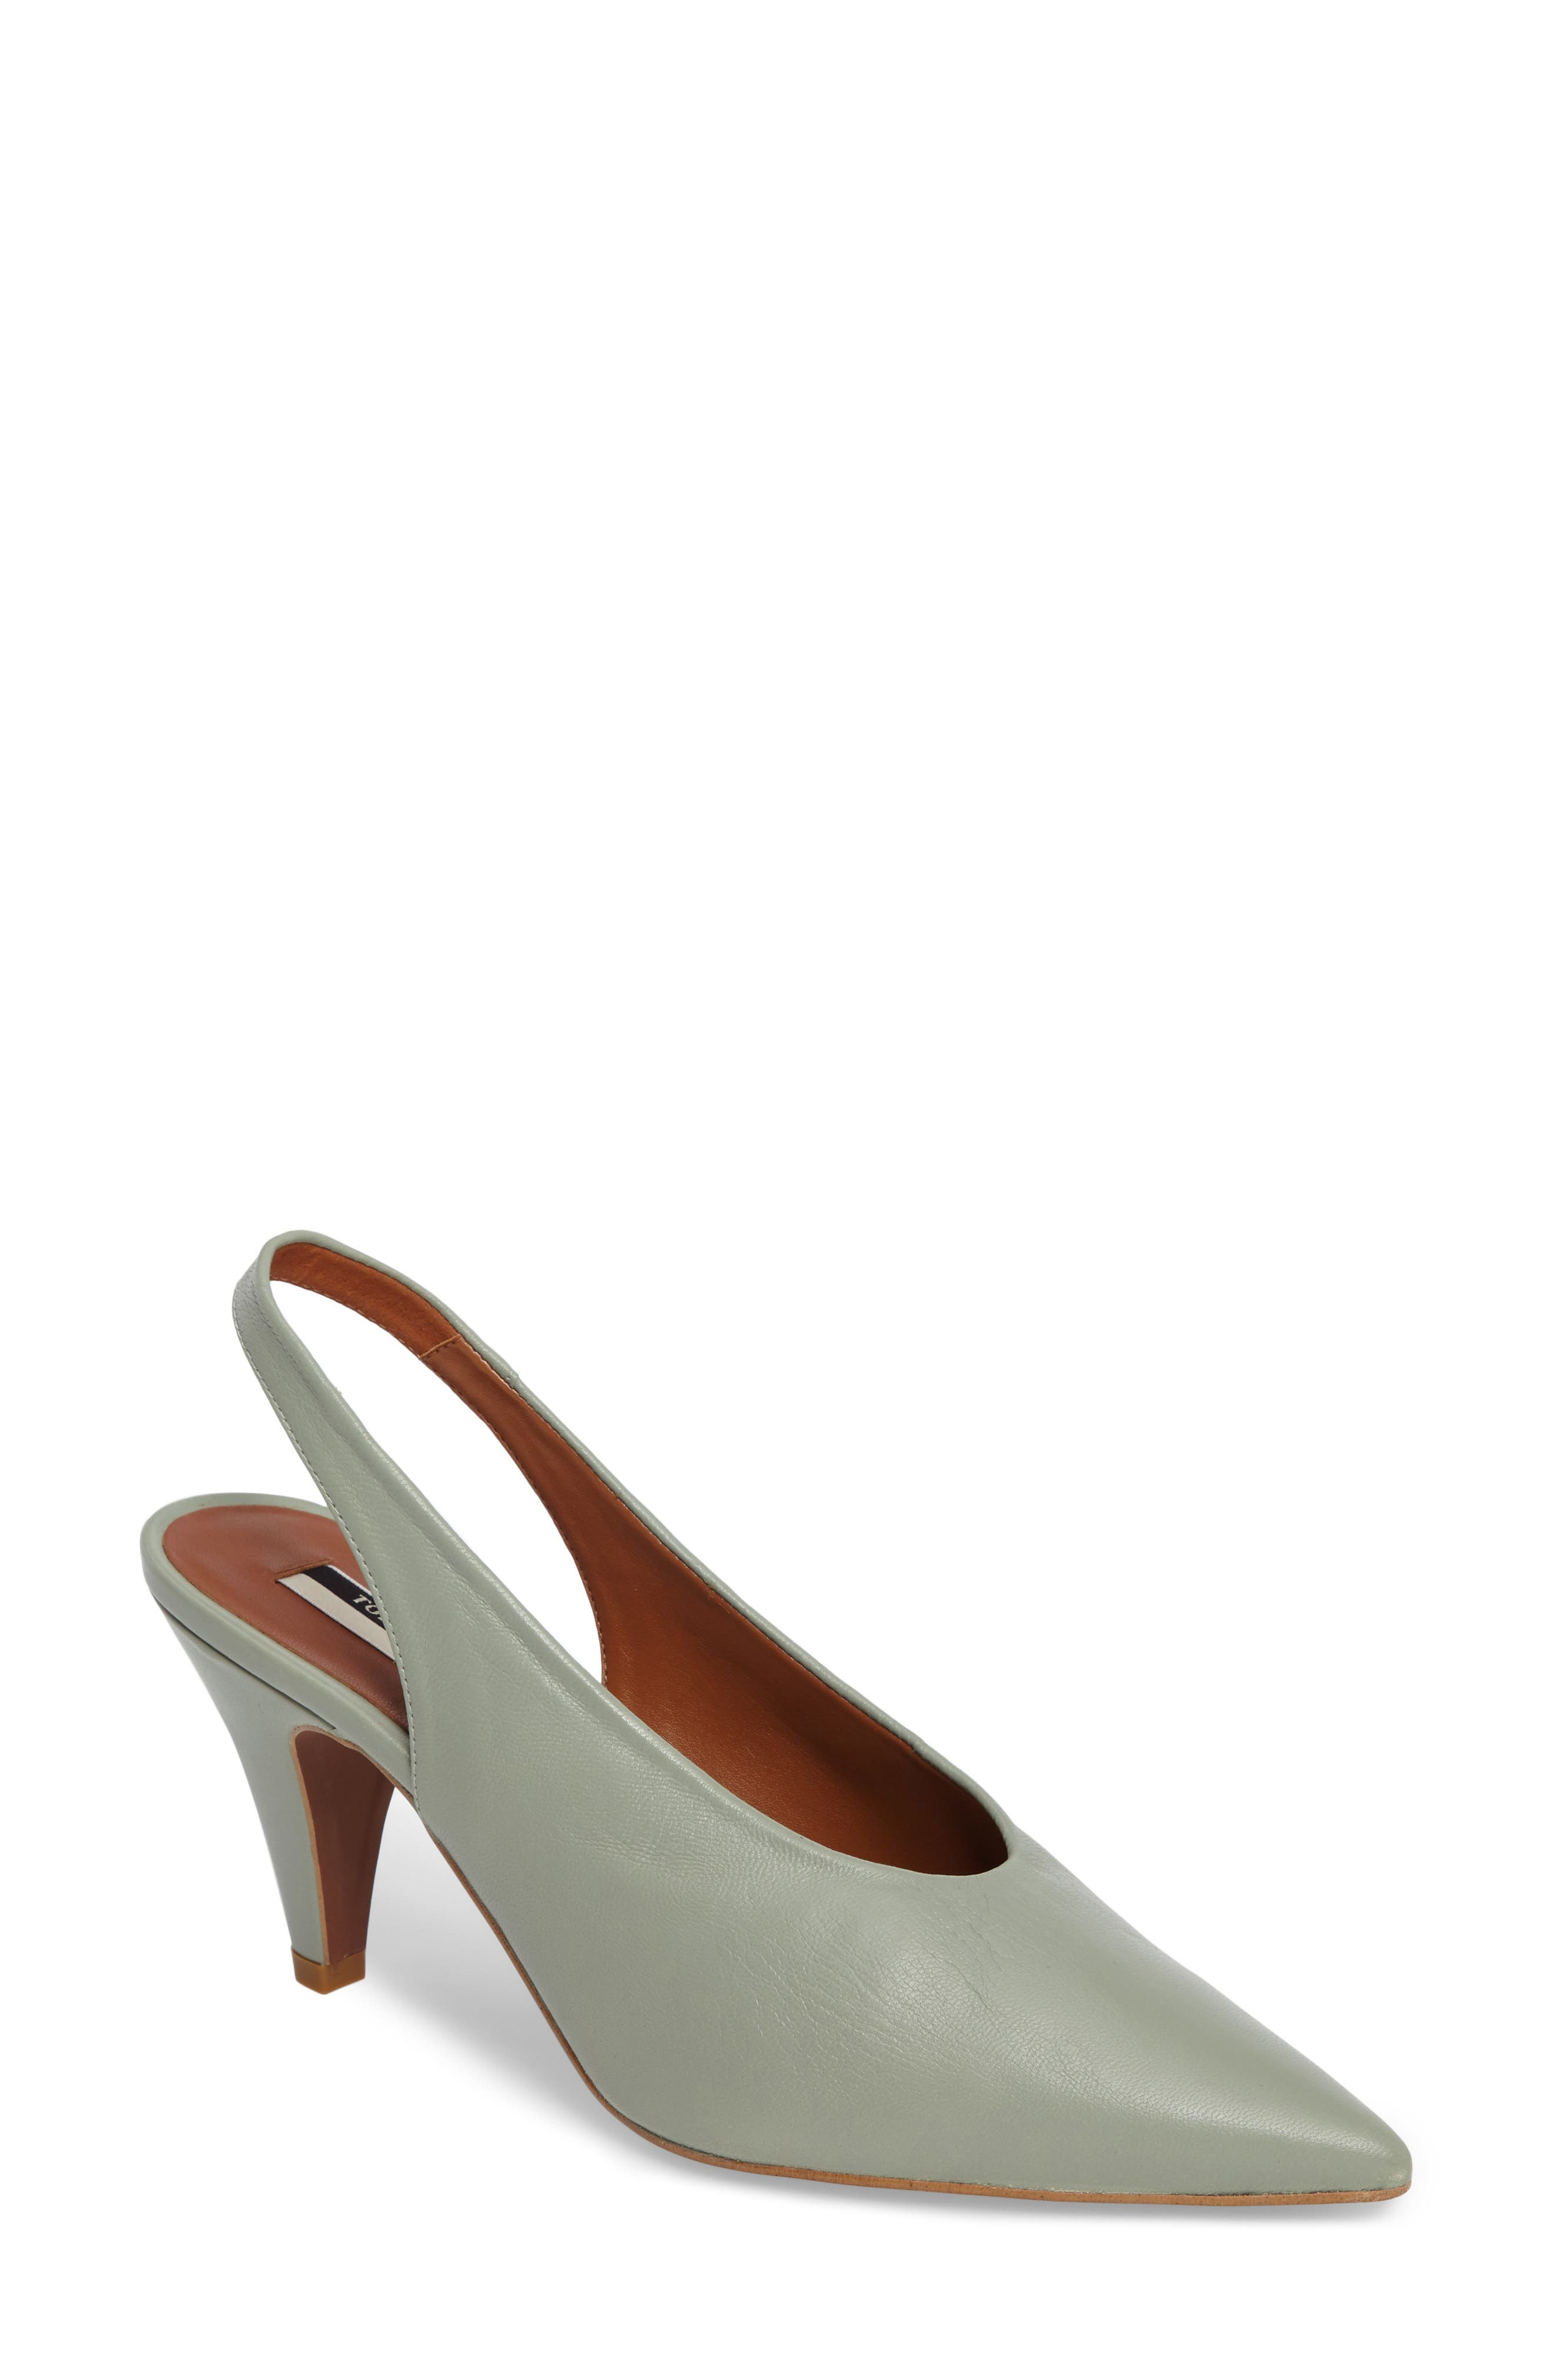 Alternate Image 1 Selected - Topshop Jemma Slingback Pointy-Toe Pump (Women)